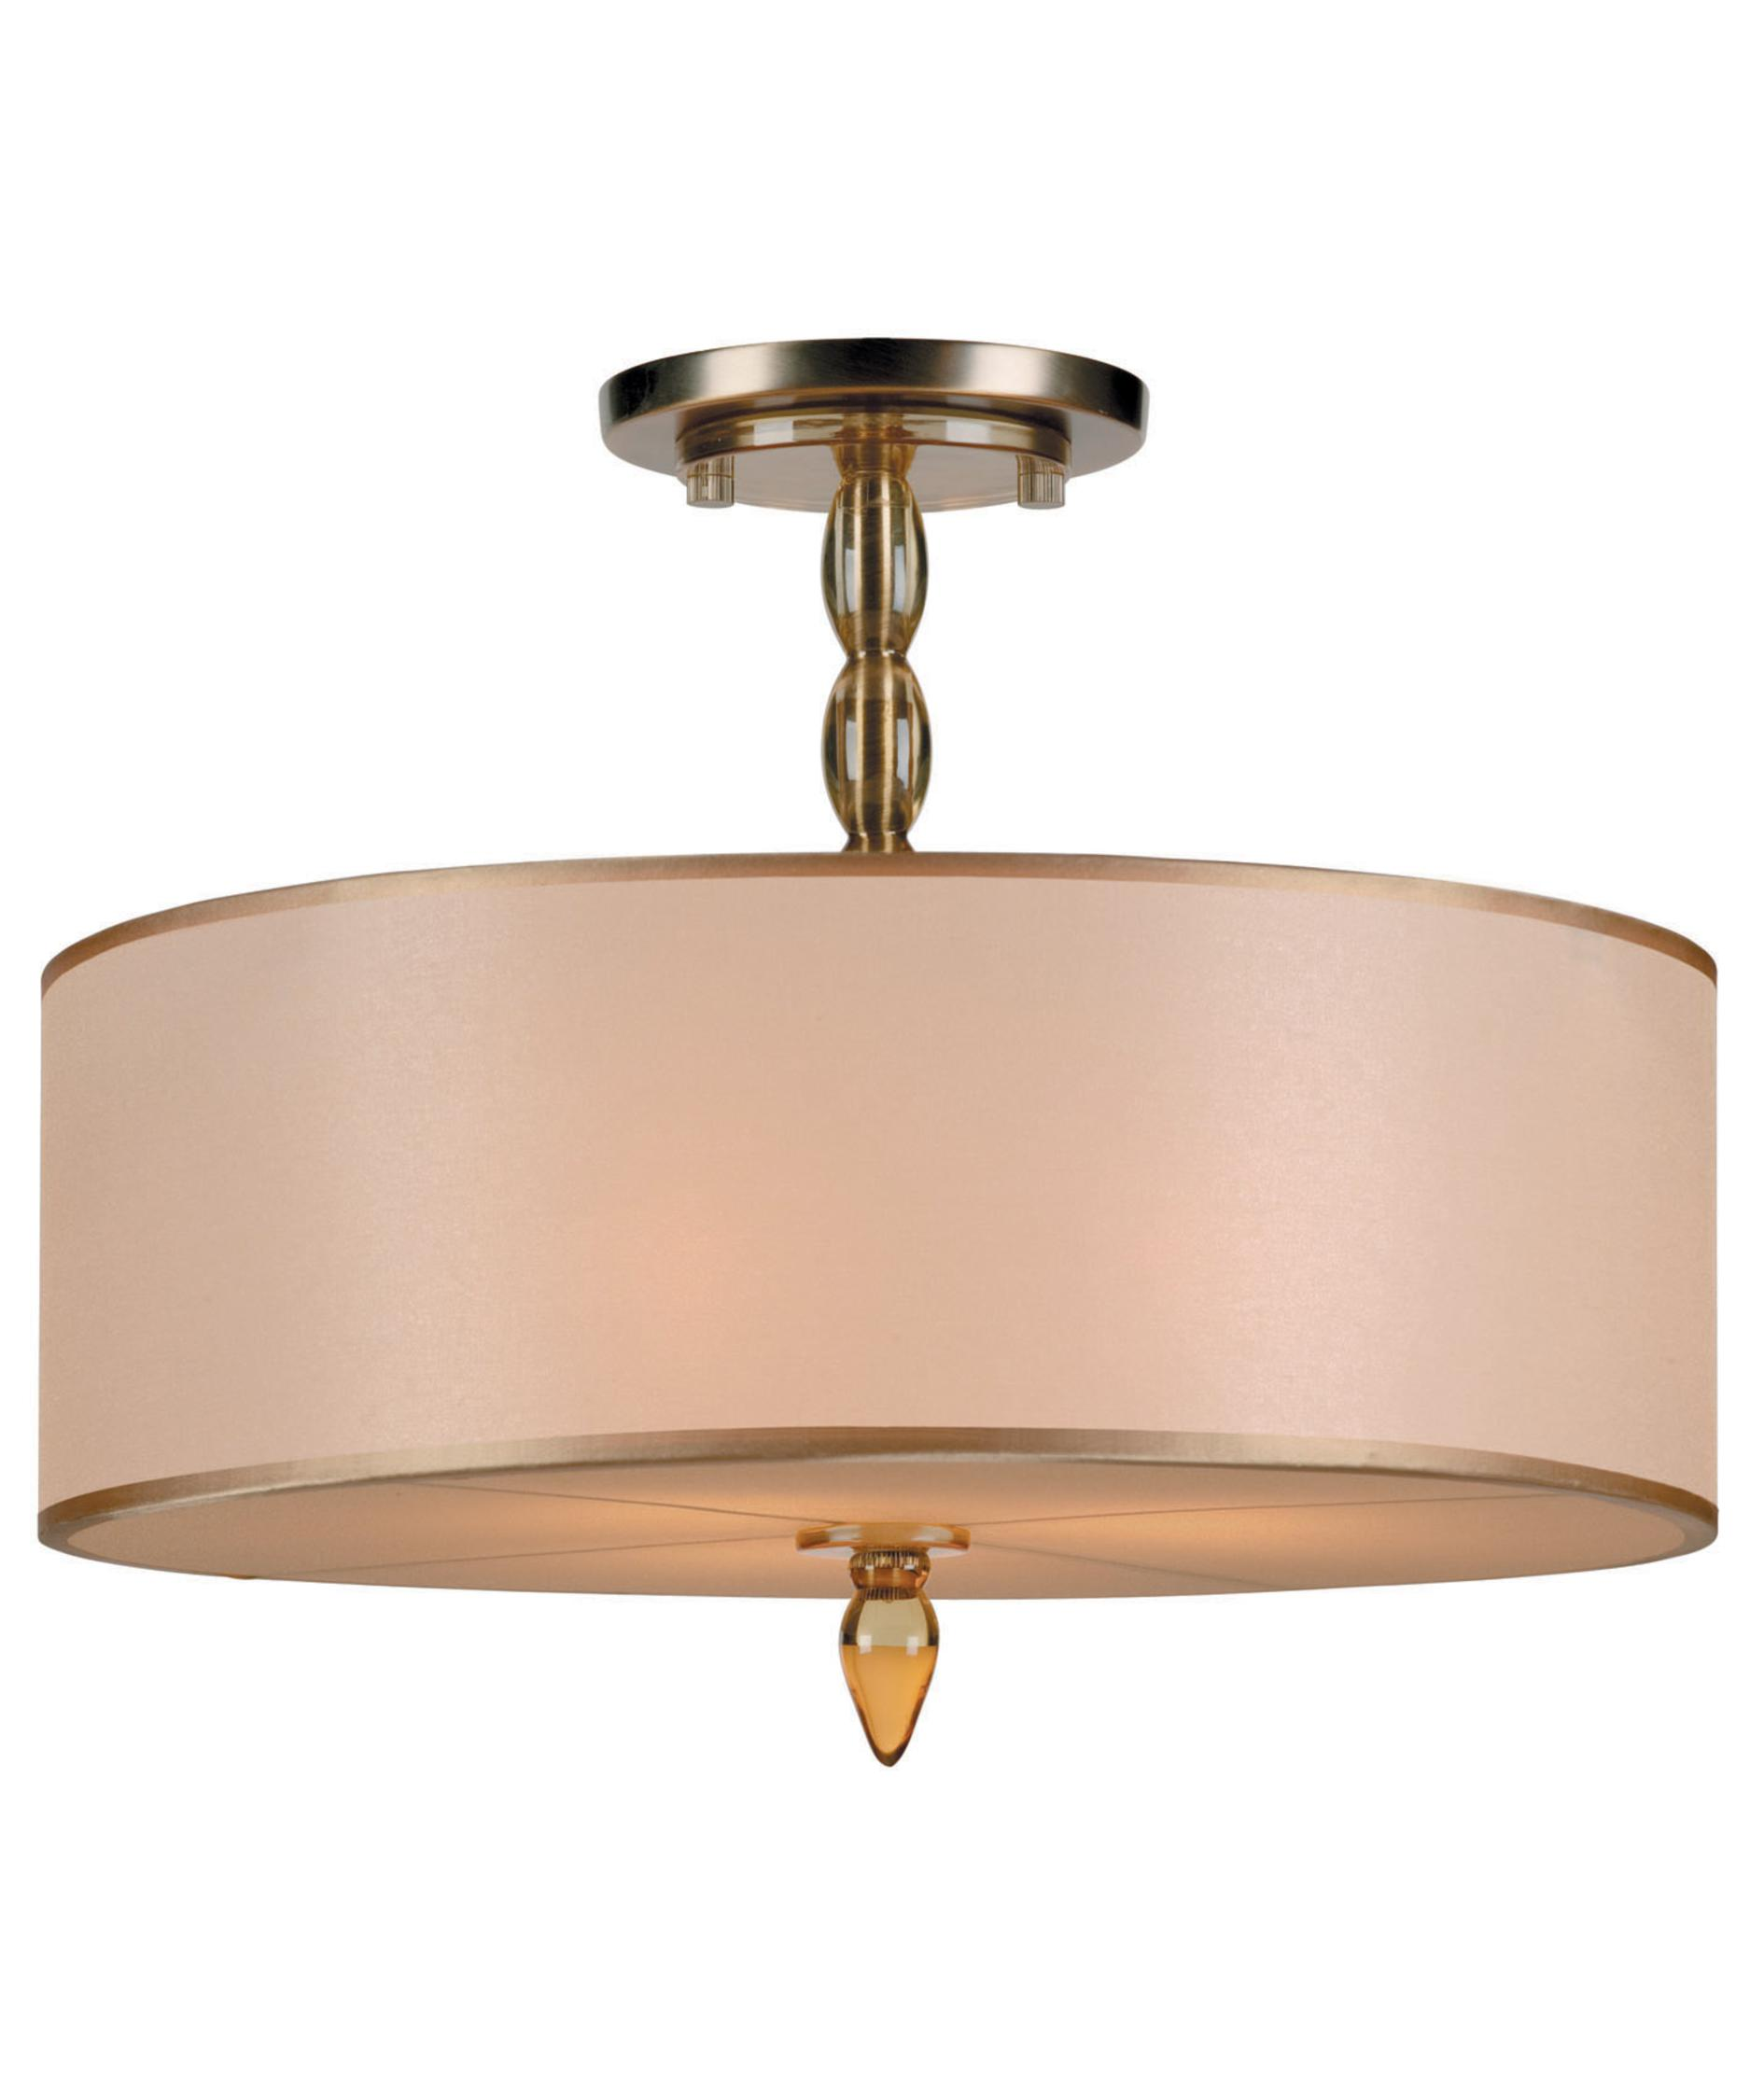 crystorama 9505 luxo 18 inch wide semi flush mount | capitol